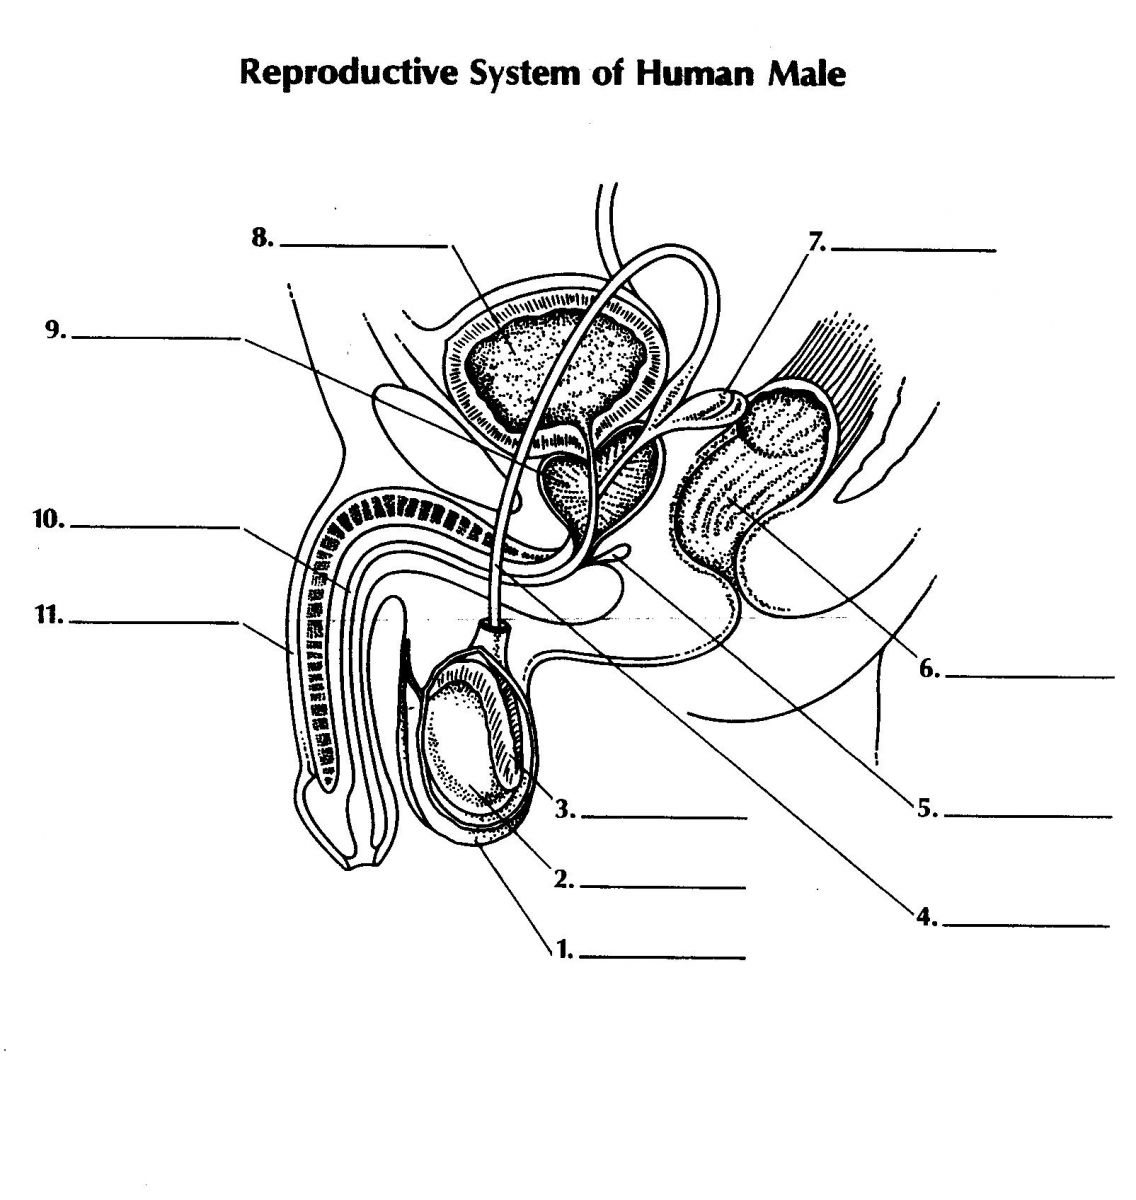 reproductive system of the human male - proprofs quiz, Muscles